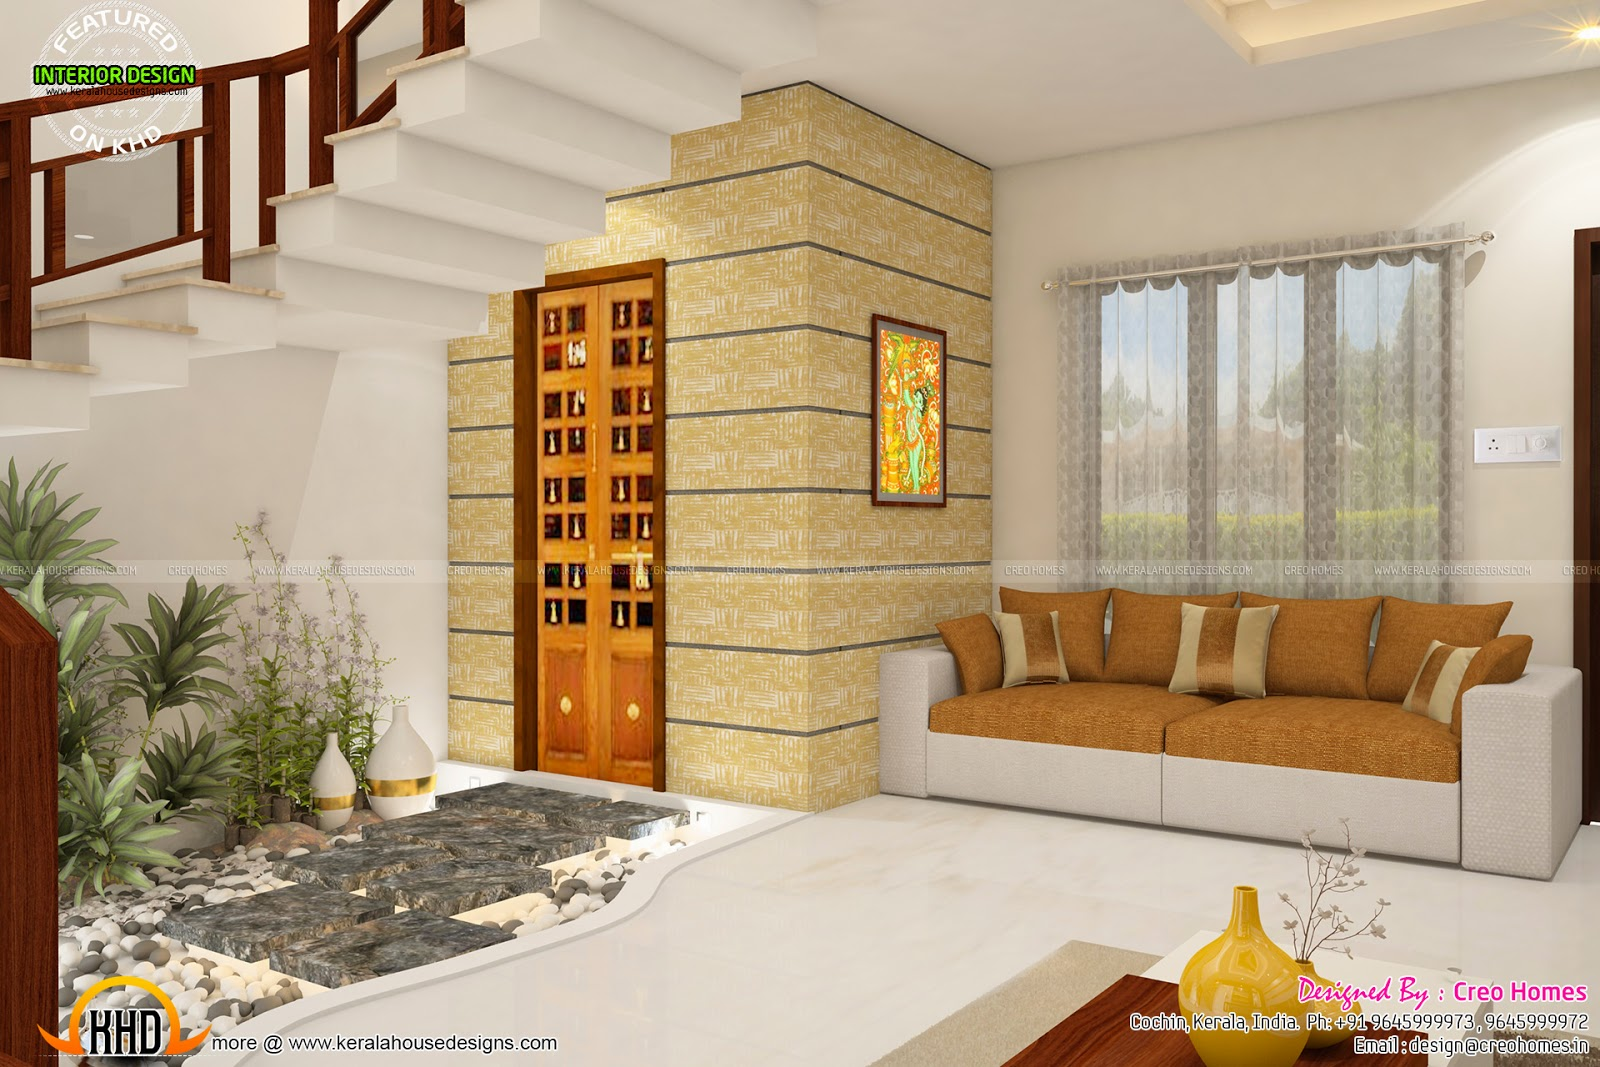 Total home interior solutions by creo homes kerala home for Home plans with interior photos